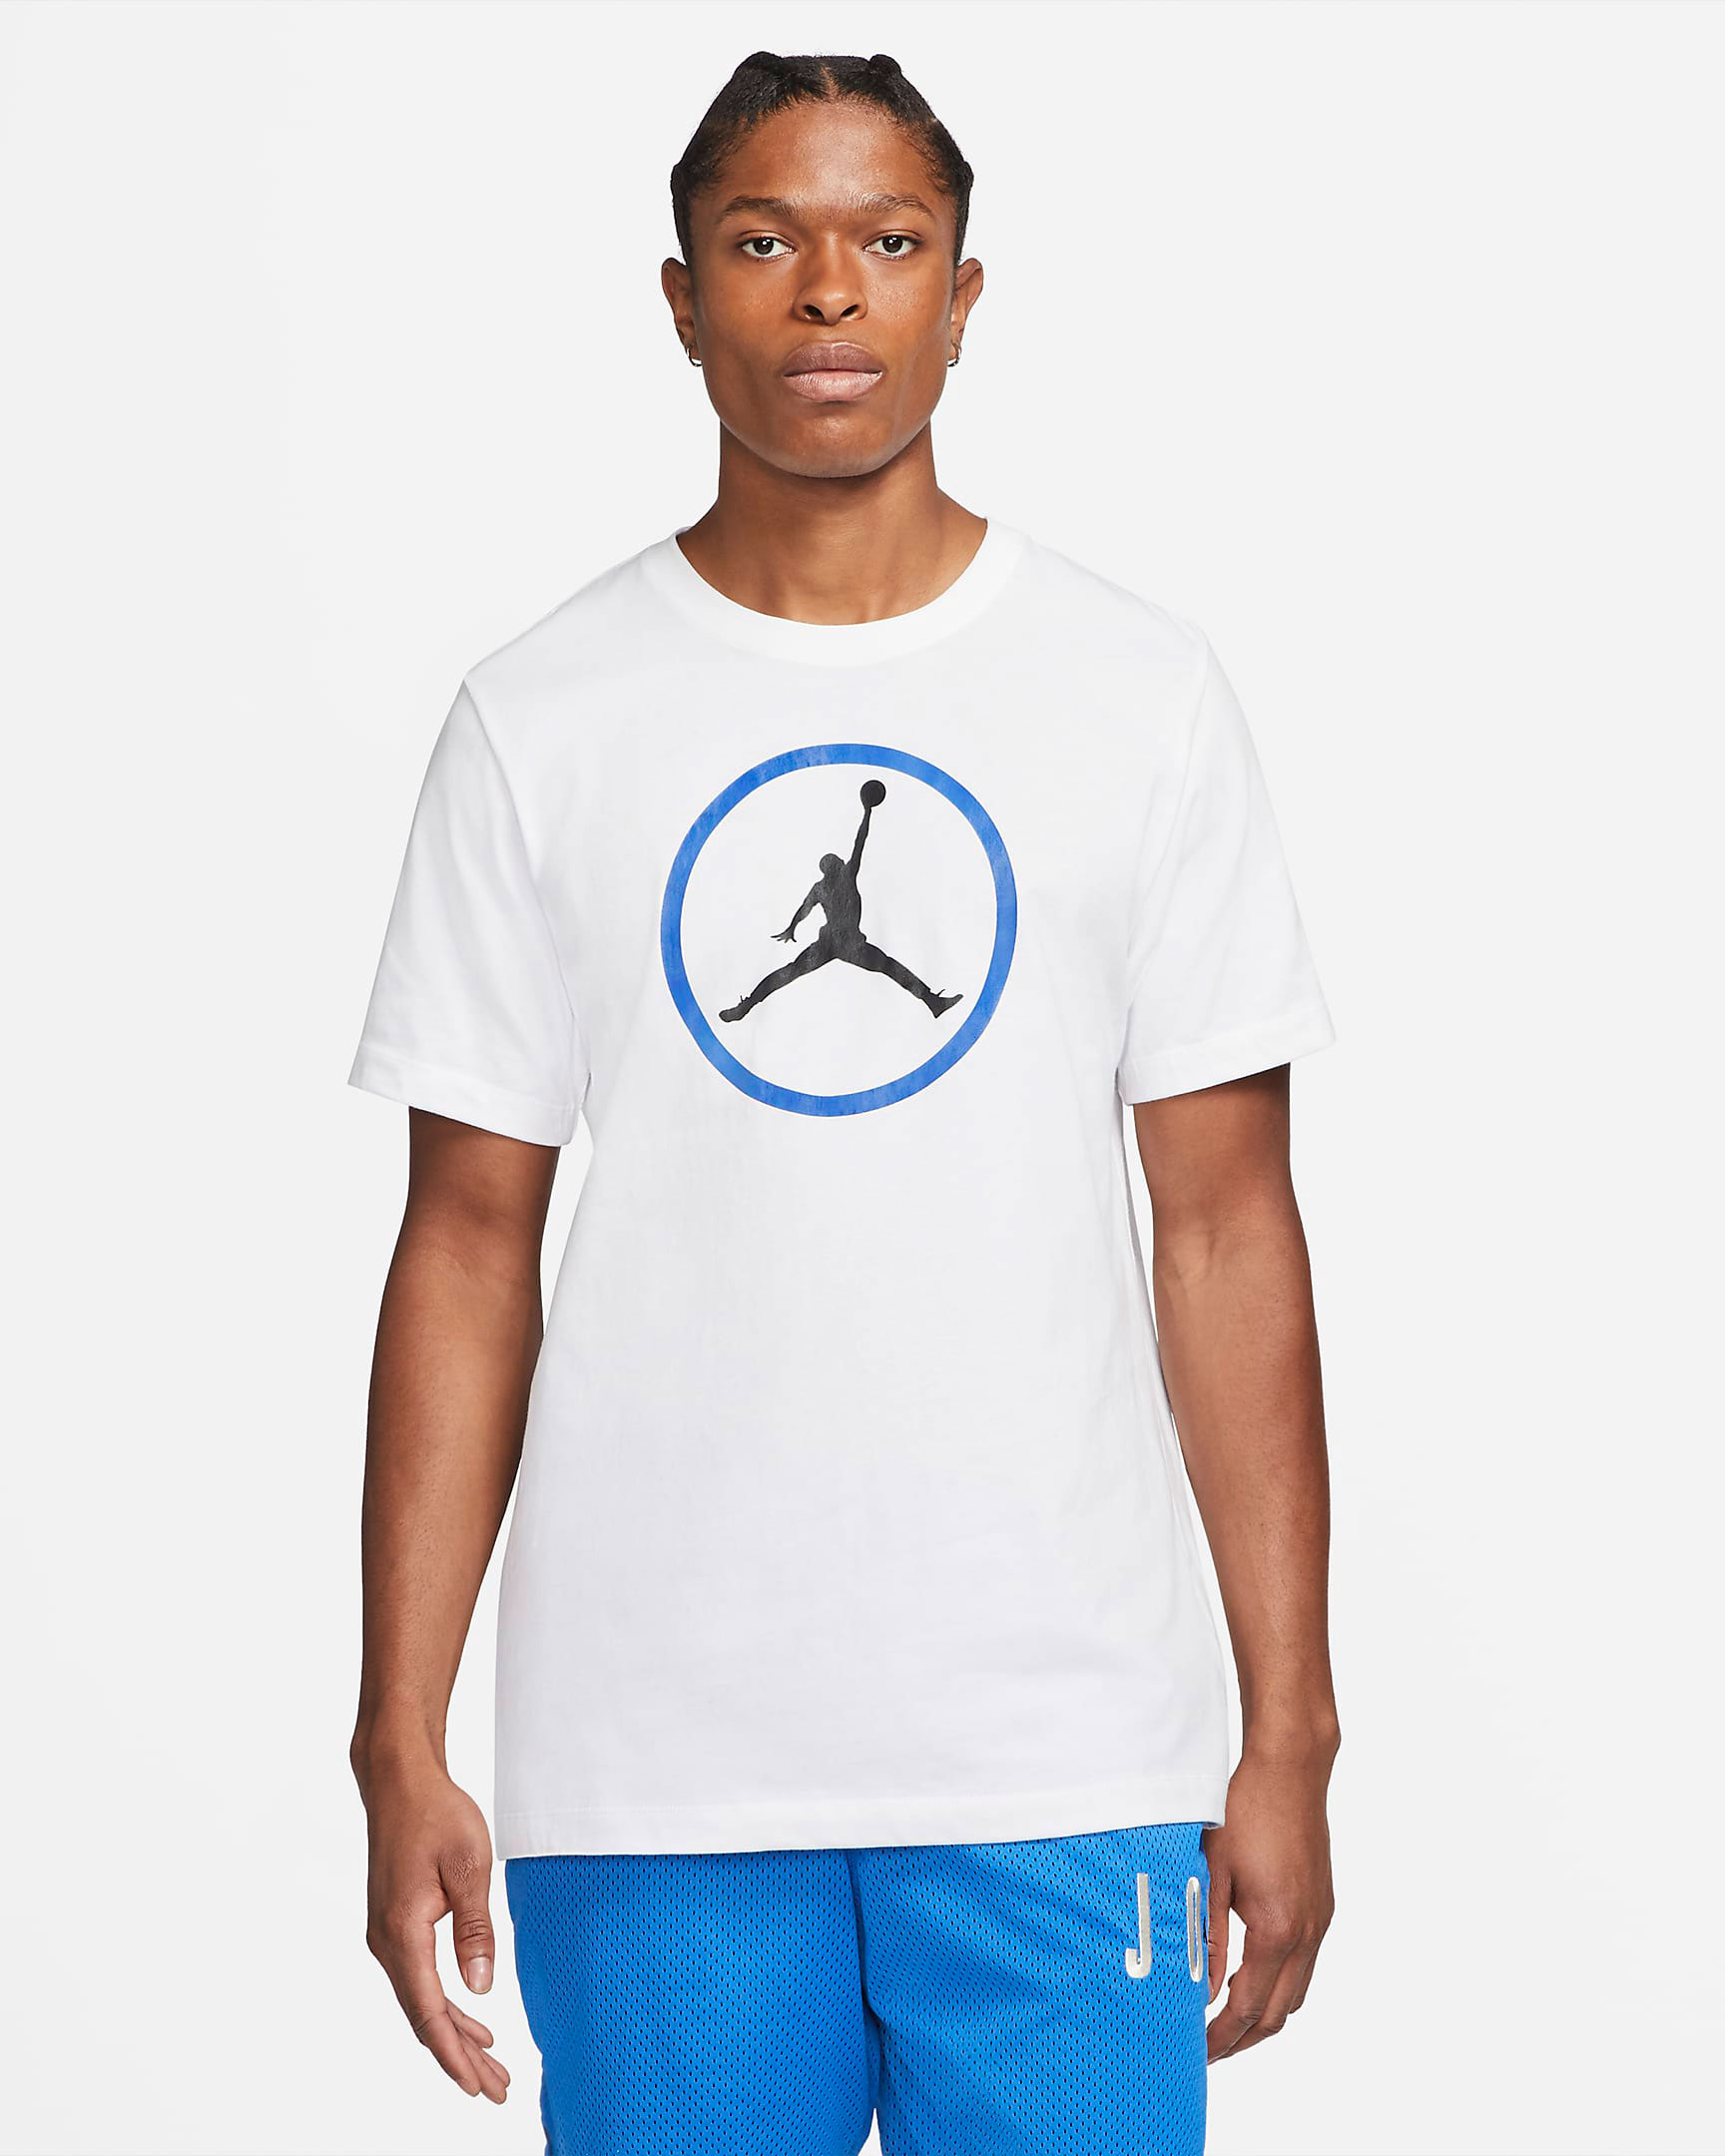 jordan-sport-dna-motorsport-shirt-white-blue-1